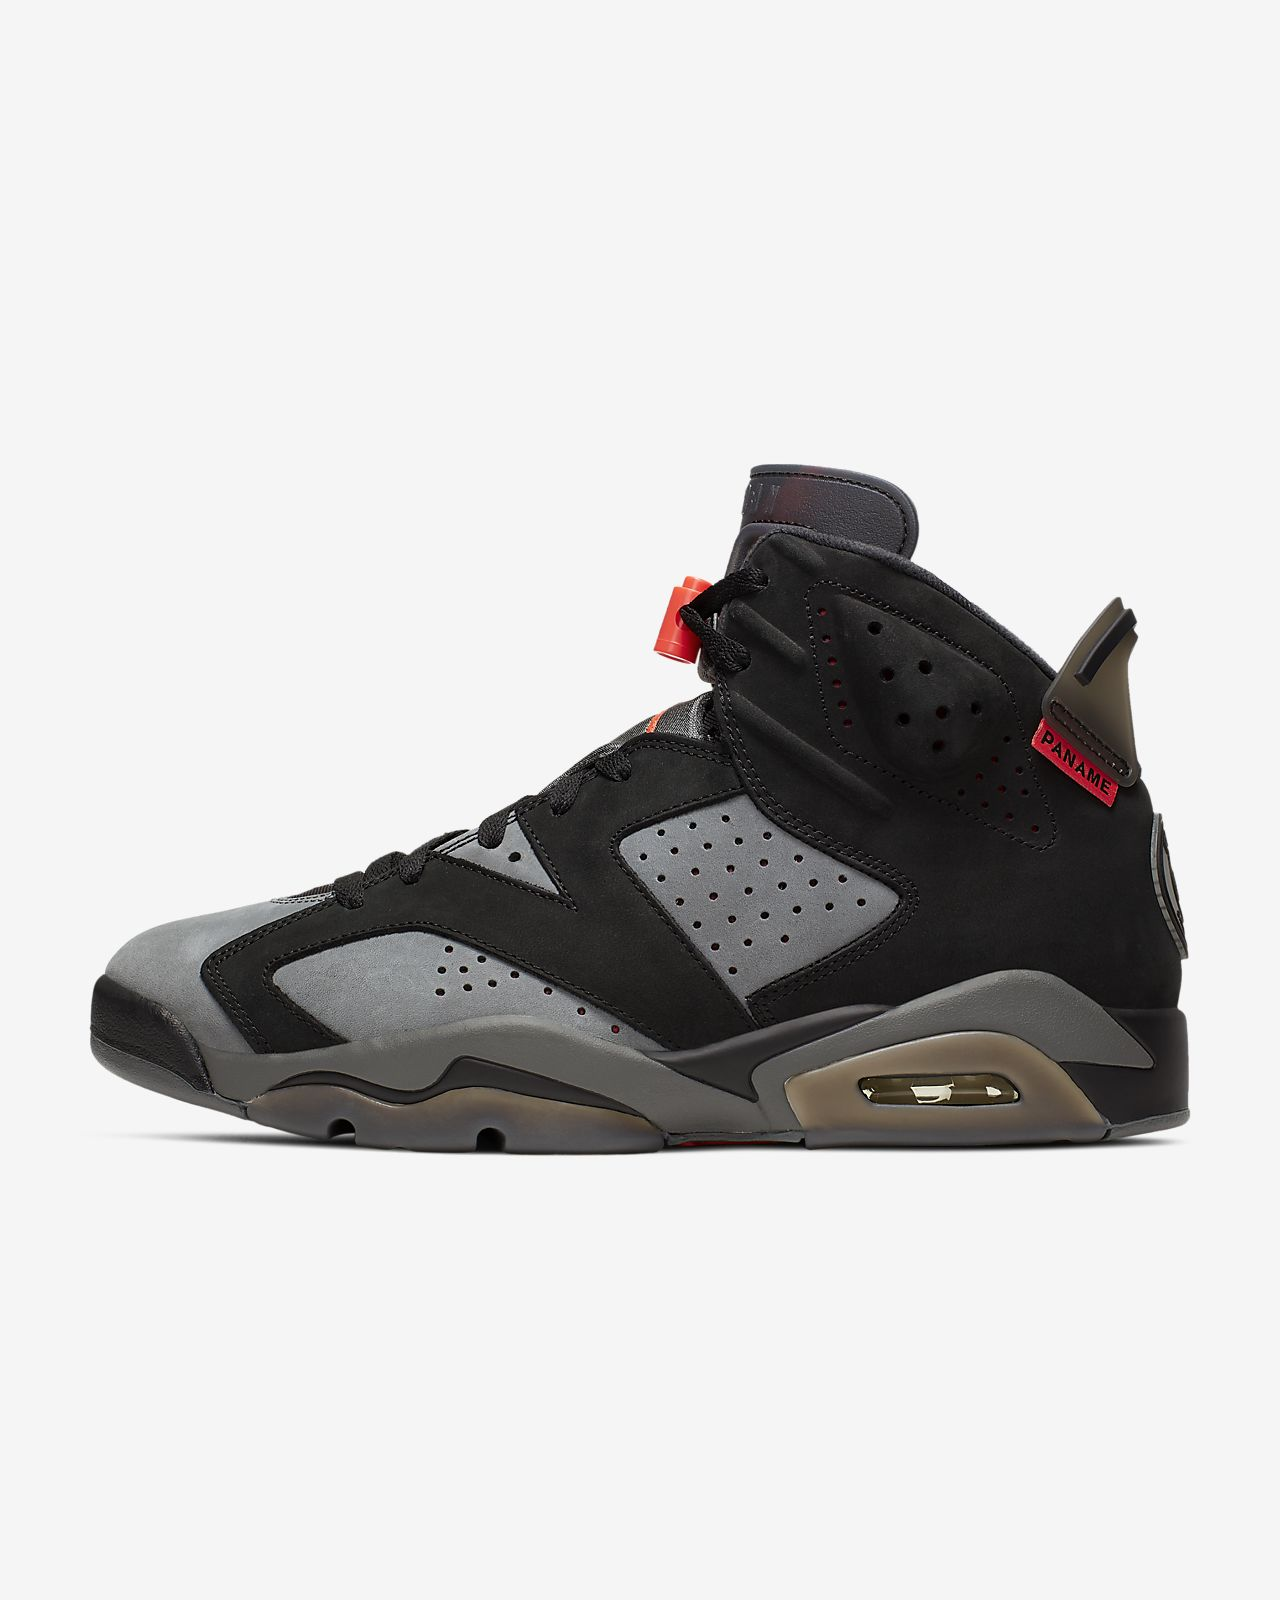 Air Jordan 6 Retro Paris Saint-Germain Herenschoen